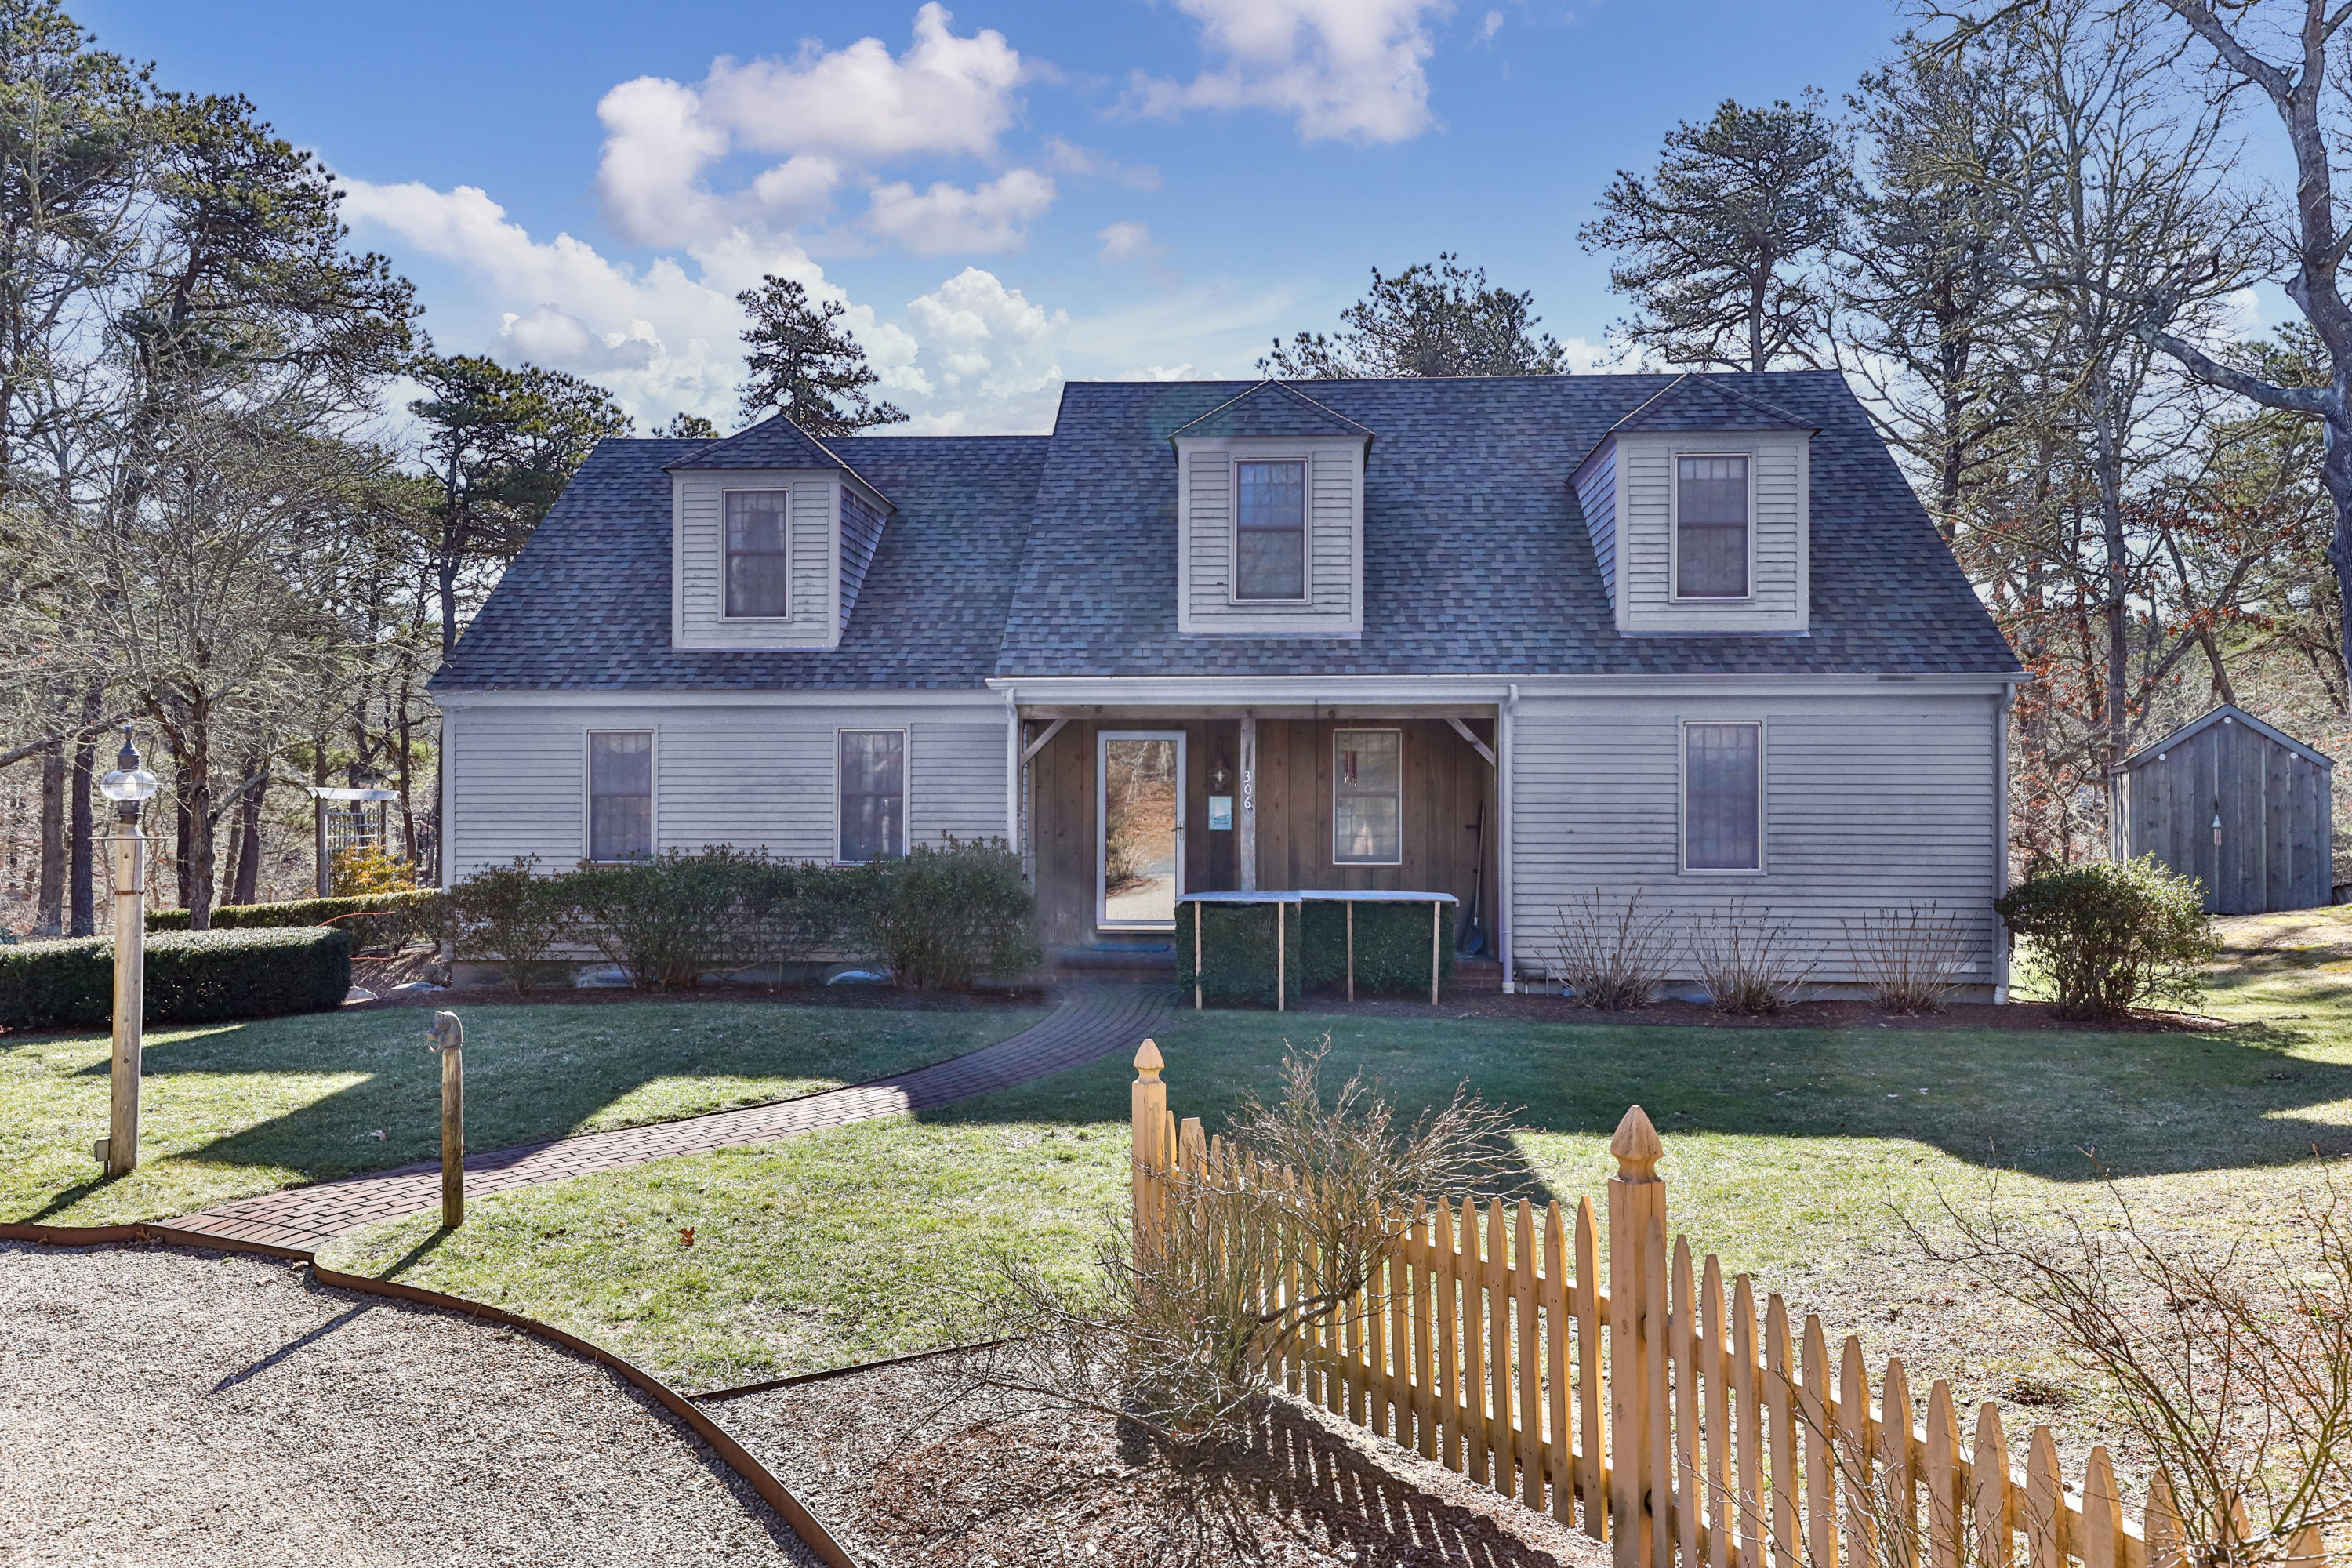 306 Old Comers Road, Chatham MA, 02633 sales details